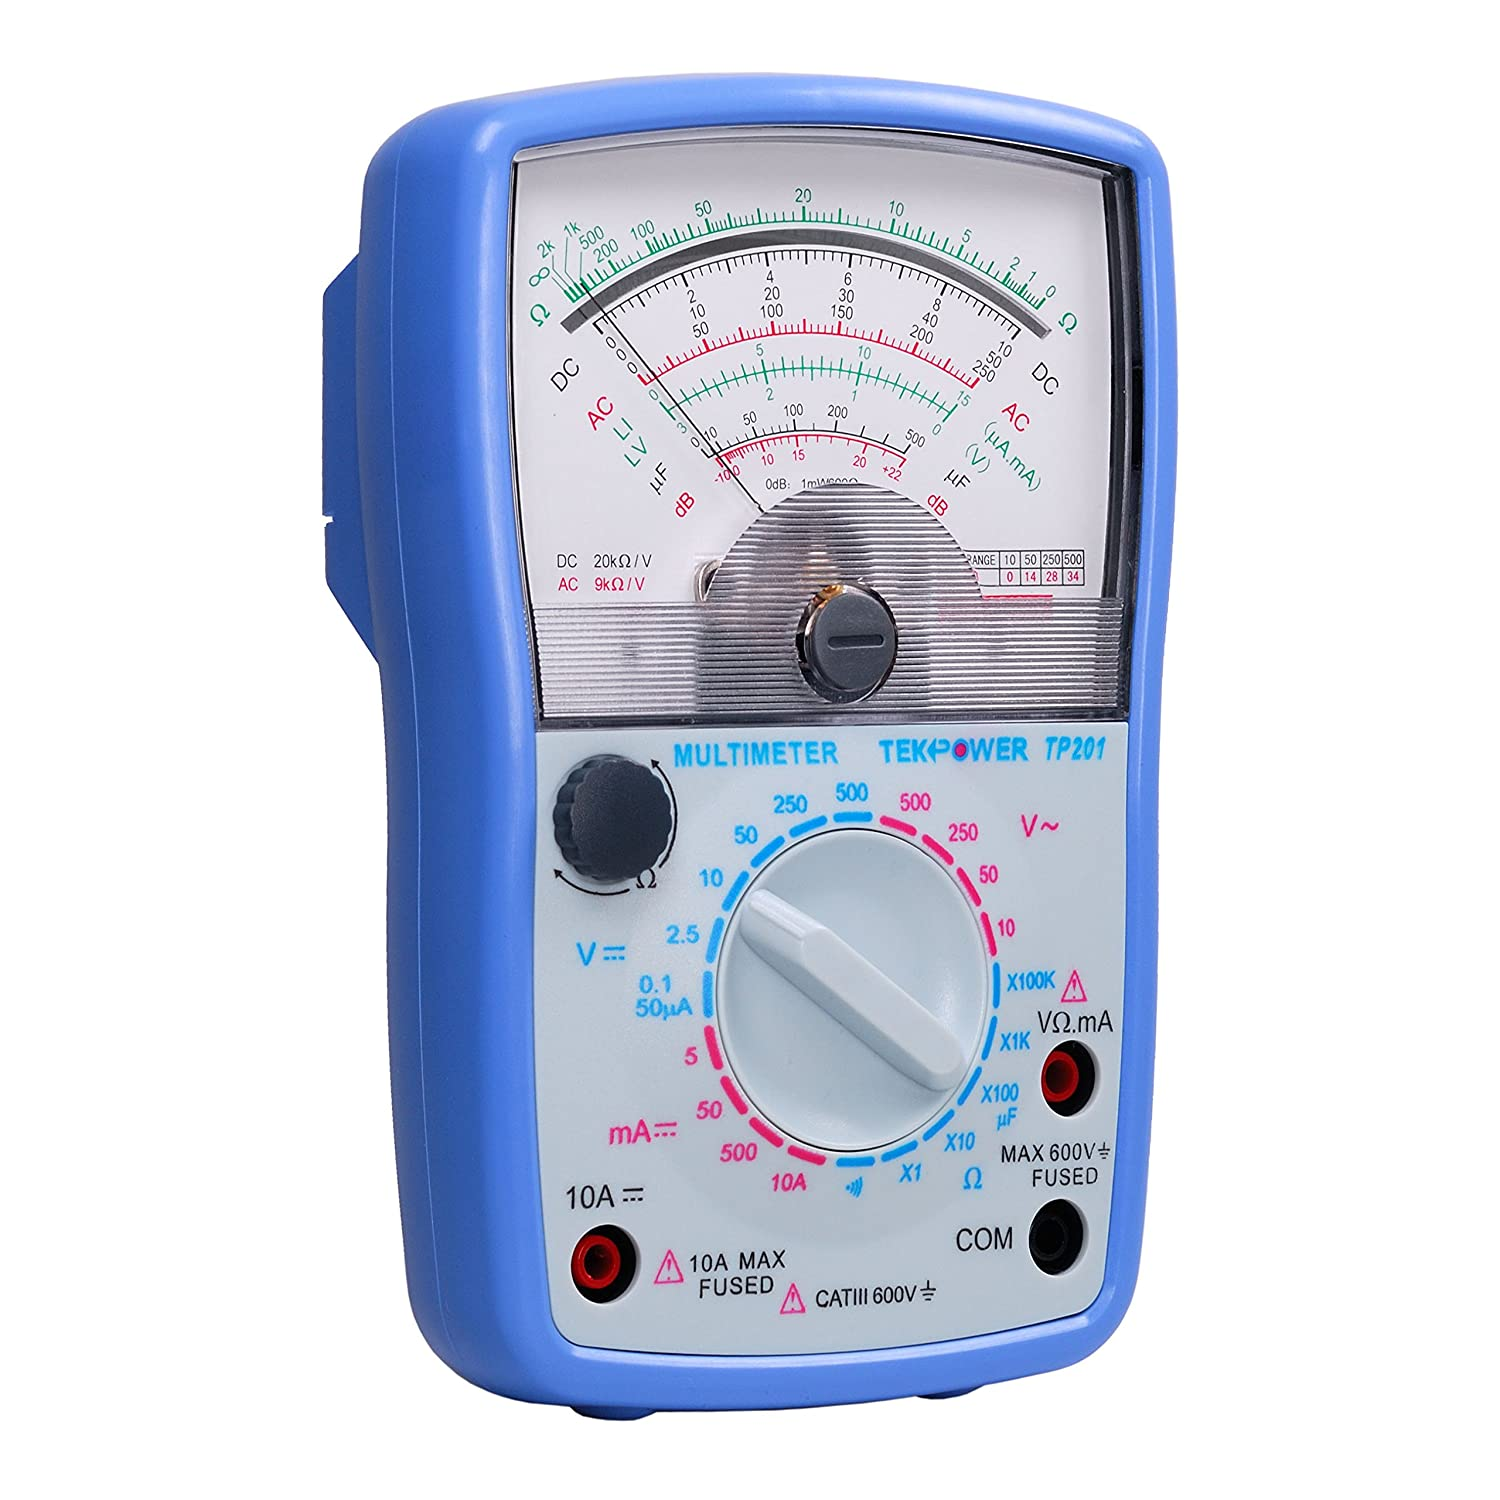 for students For school Tekpower TP201 20-range Analog Multimeter with Capacitance Measurement and Continuity Test